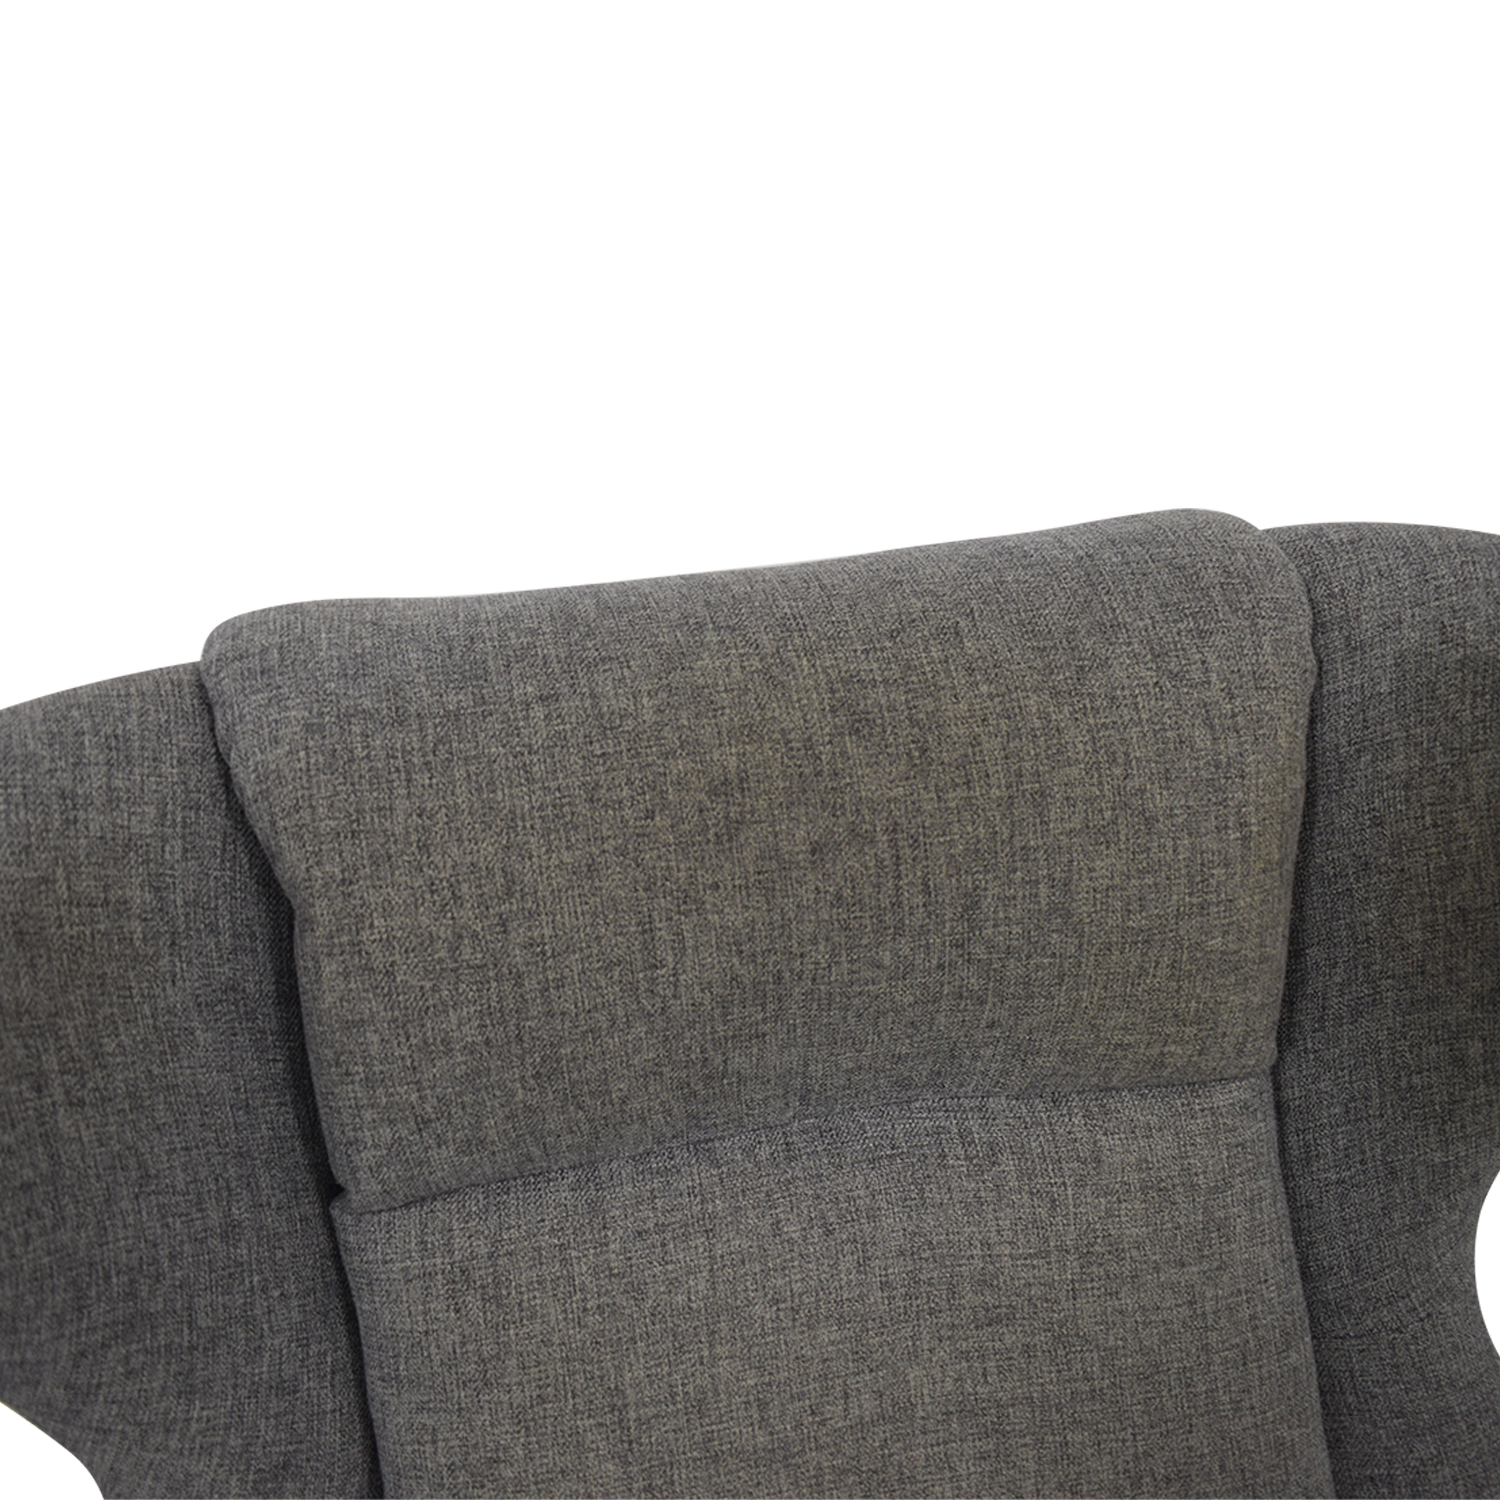 Urban Outfitters Urban Outfitters Wingback Chair on sale